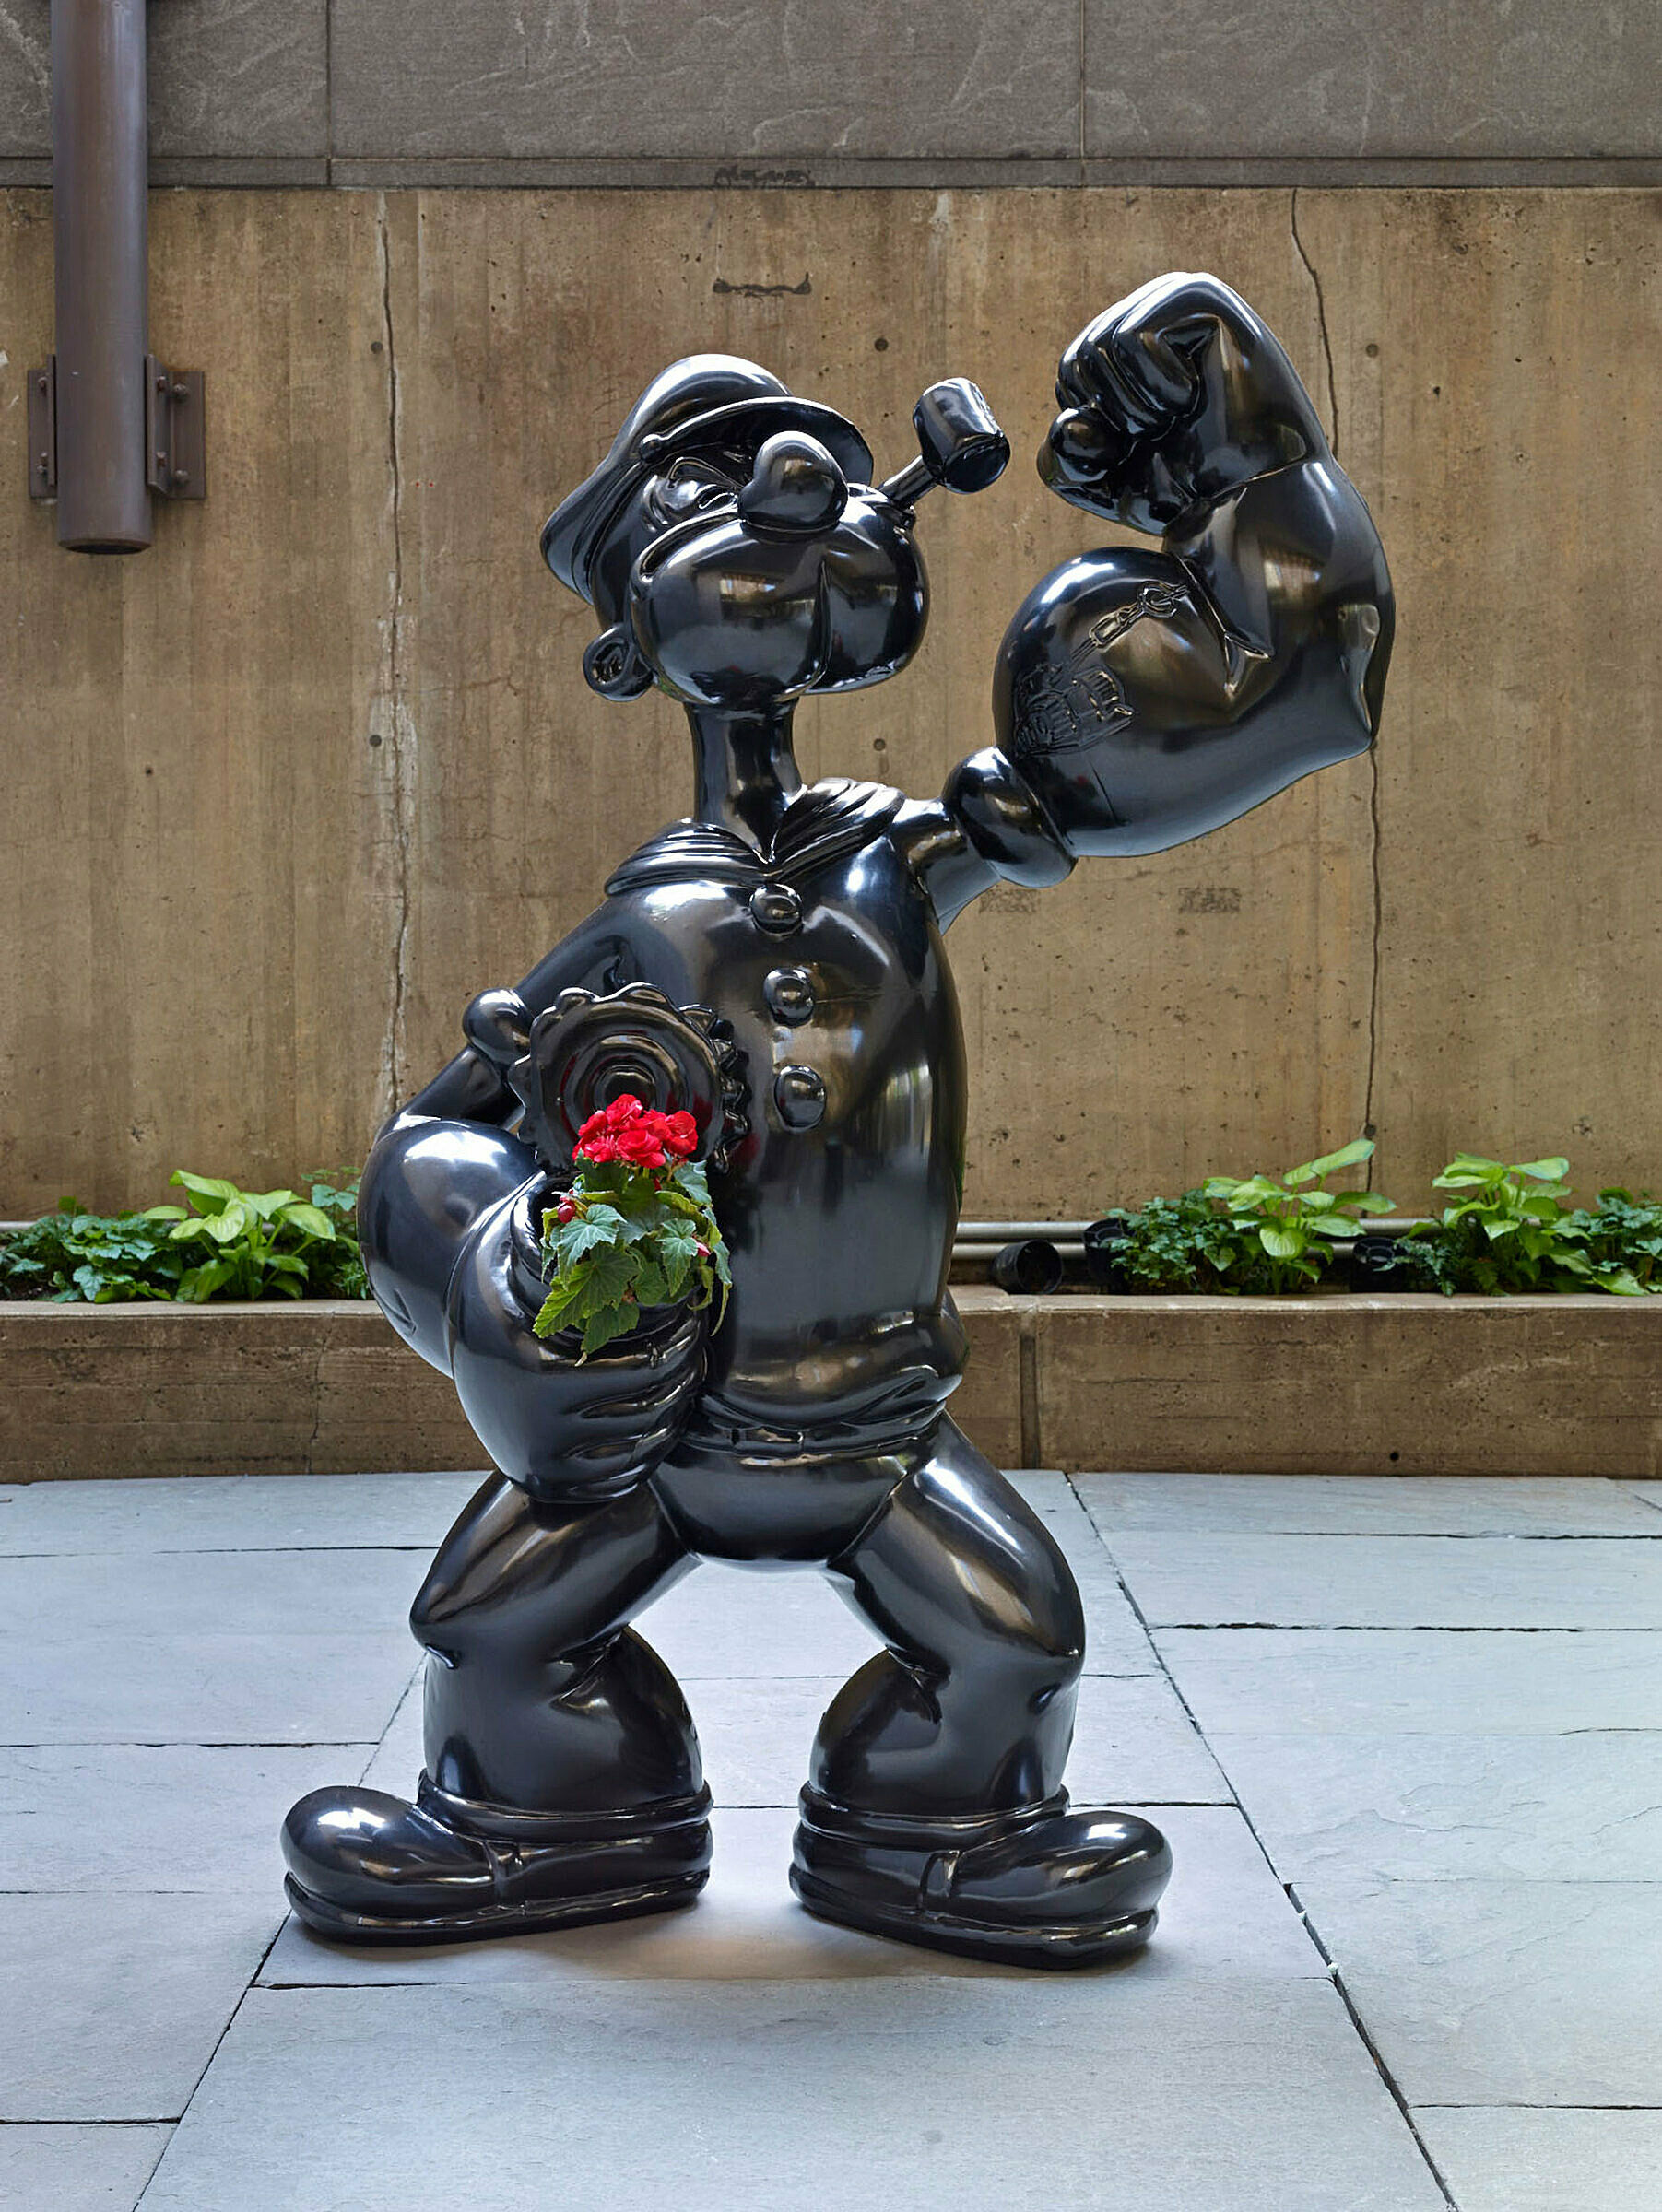 Popeye statue holding flowers.